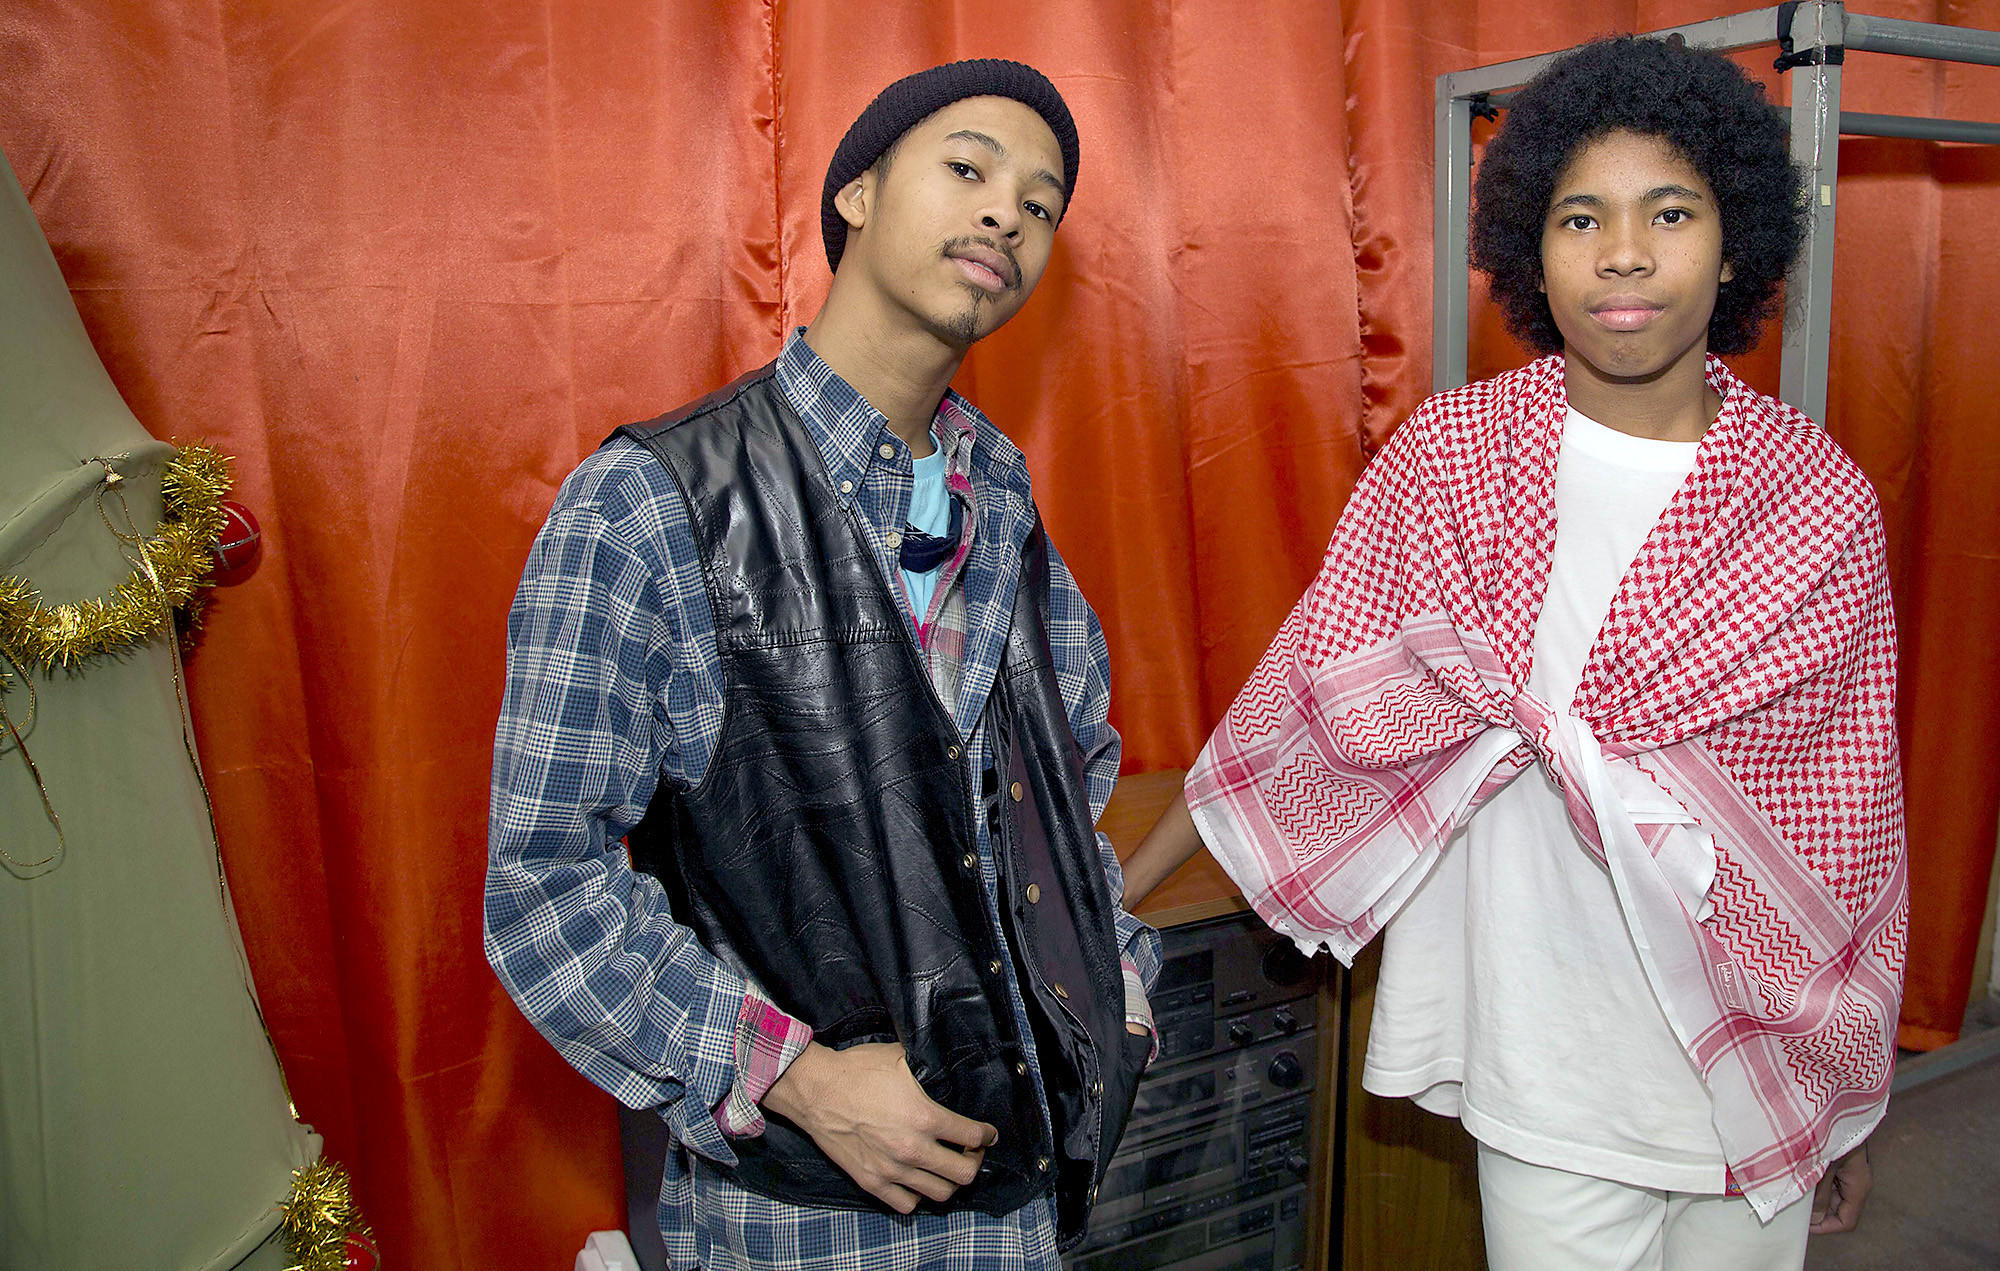 Brothers Mikaiah and Anaiah Lei of the Bots grew up in Glendale and are playing at the Coachella Music and Arts Festival starting this weekend.